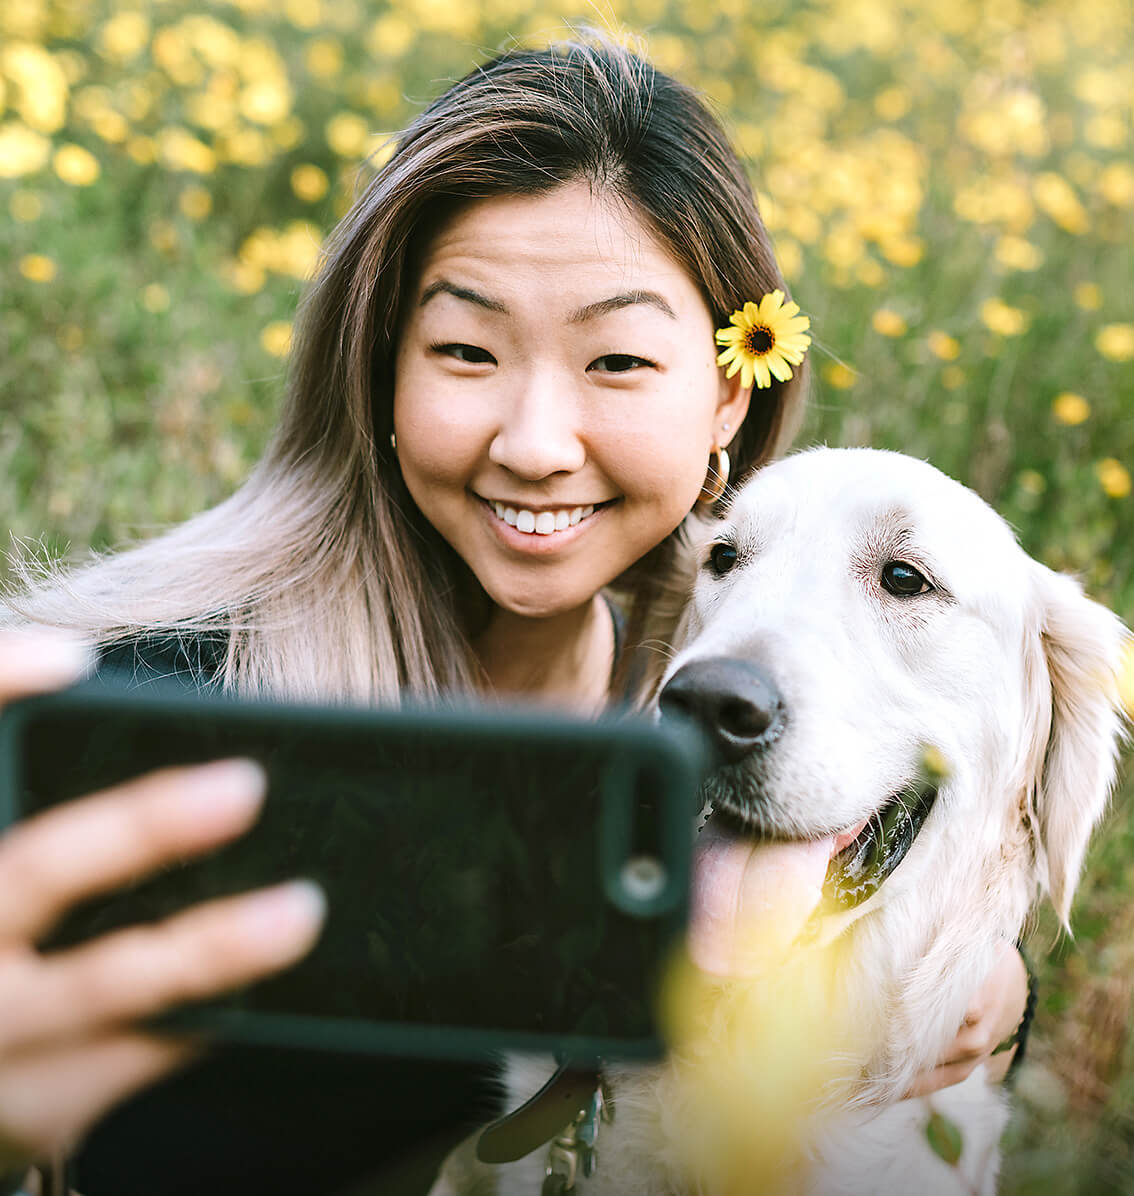 woman taking a photo with a golden retriever